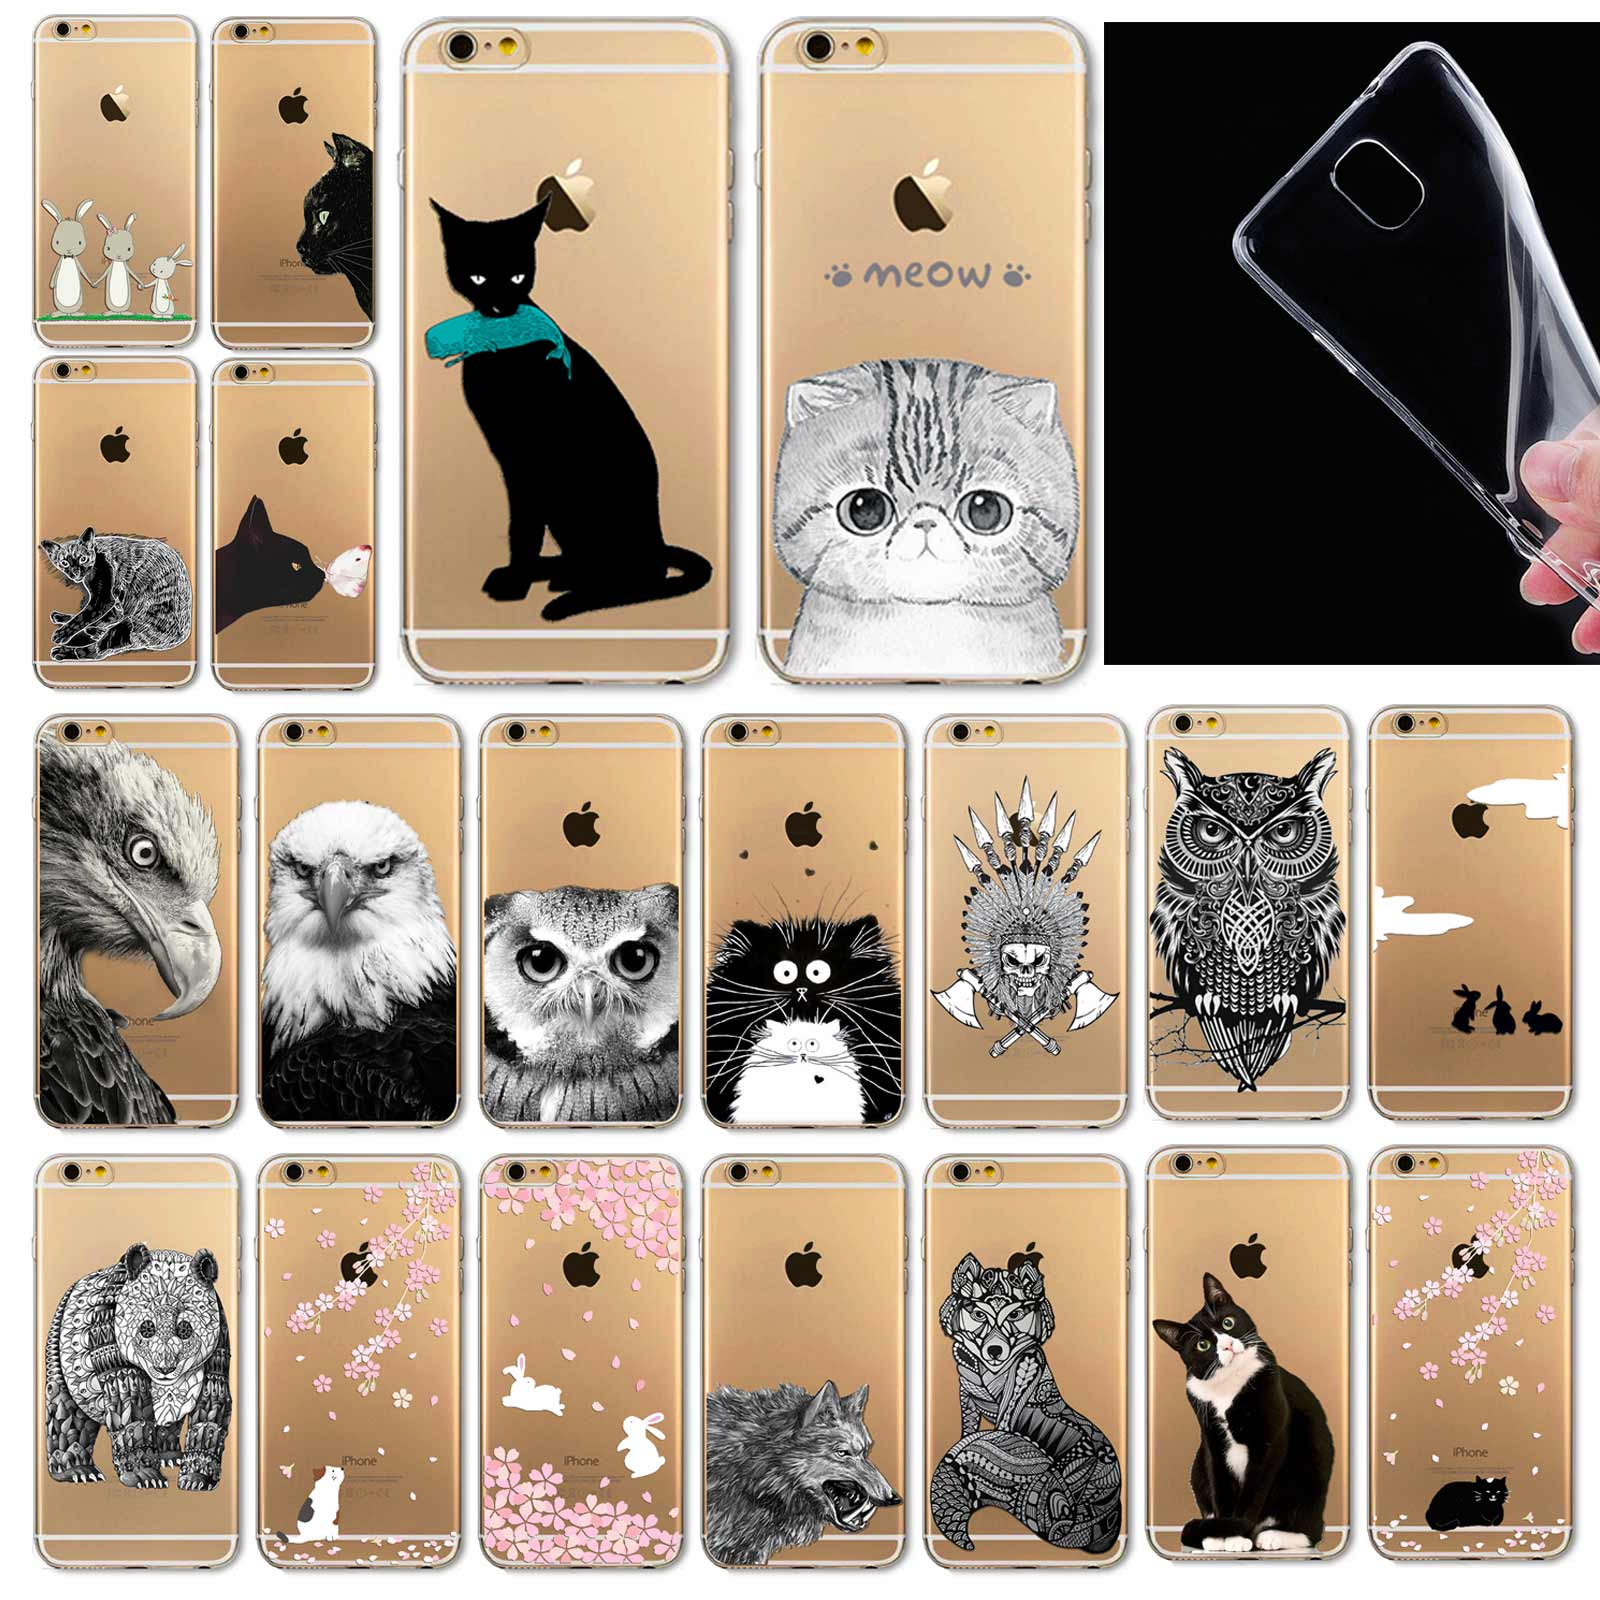 """Fundas Mobile Phone Bags Case Cover for iphone 6 6S 4.7"""" Soft Slim TPU Transparent Soft Cute Animal Cat Owl Rabbit Printed Style(China (Mainland))"""